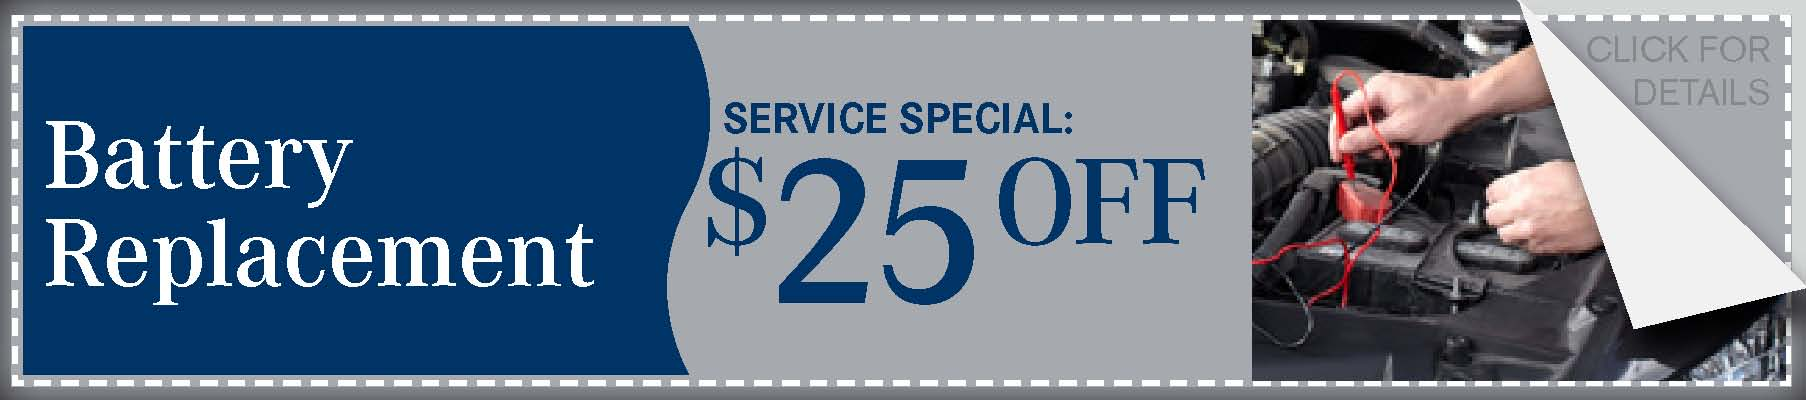 Mercedes Service Specials Springfield Car Service Center Ozark MO - Mercedes benz service coupons